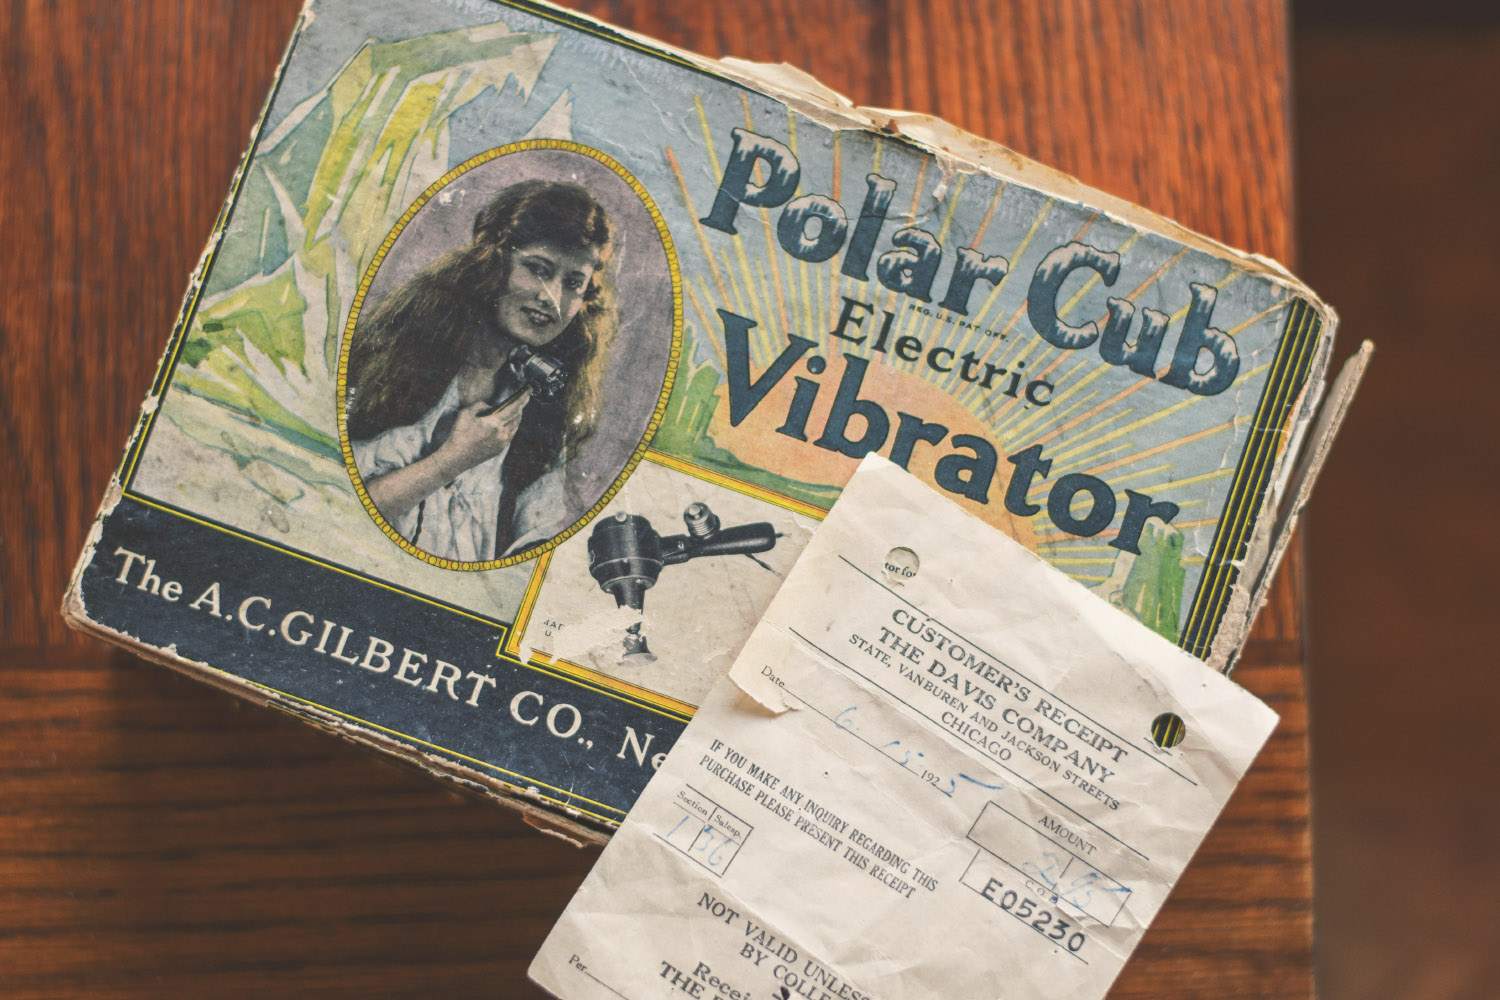 Box for the Polar Cub Electric Vibrator, with original receipt dated June 15th, 1925 in the amount of $2.95.